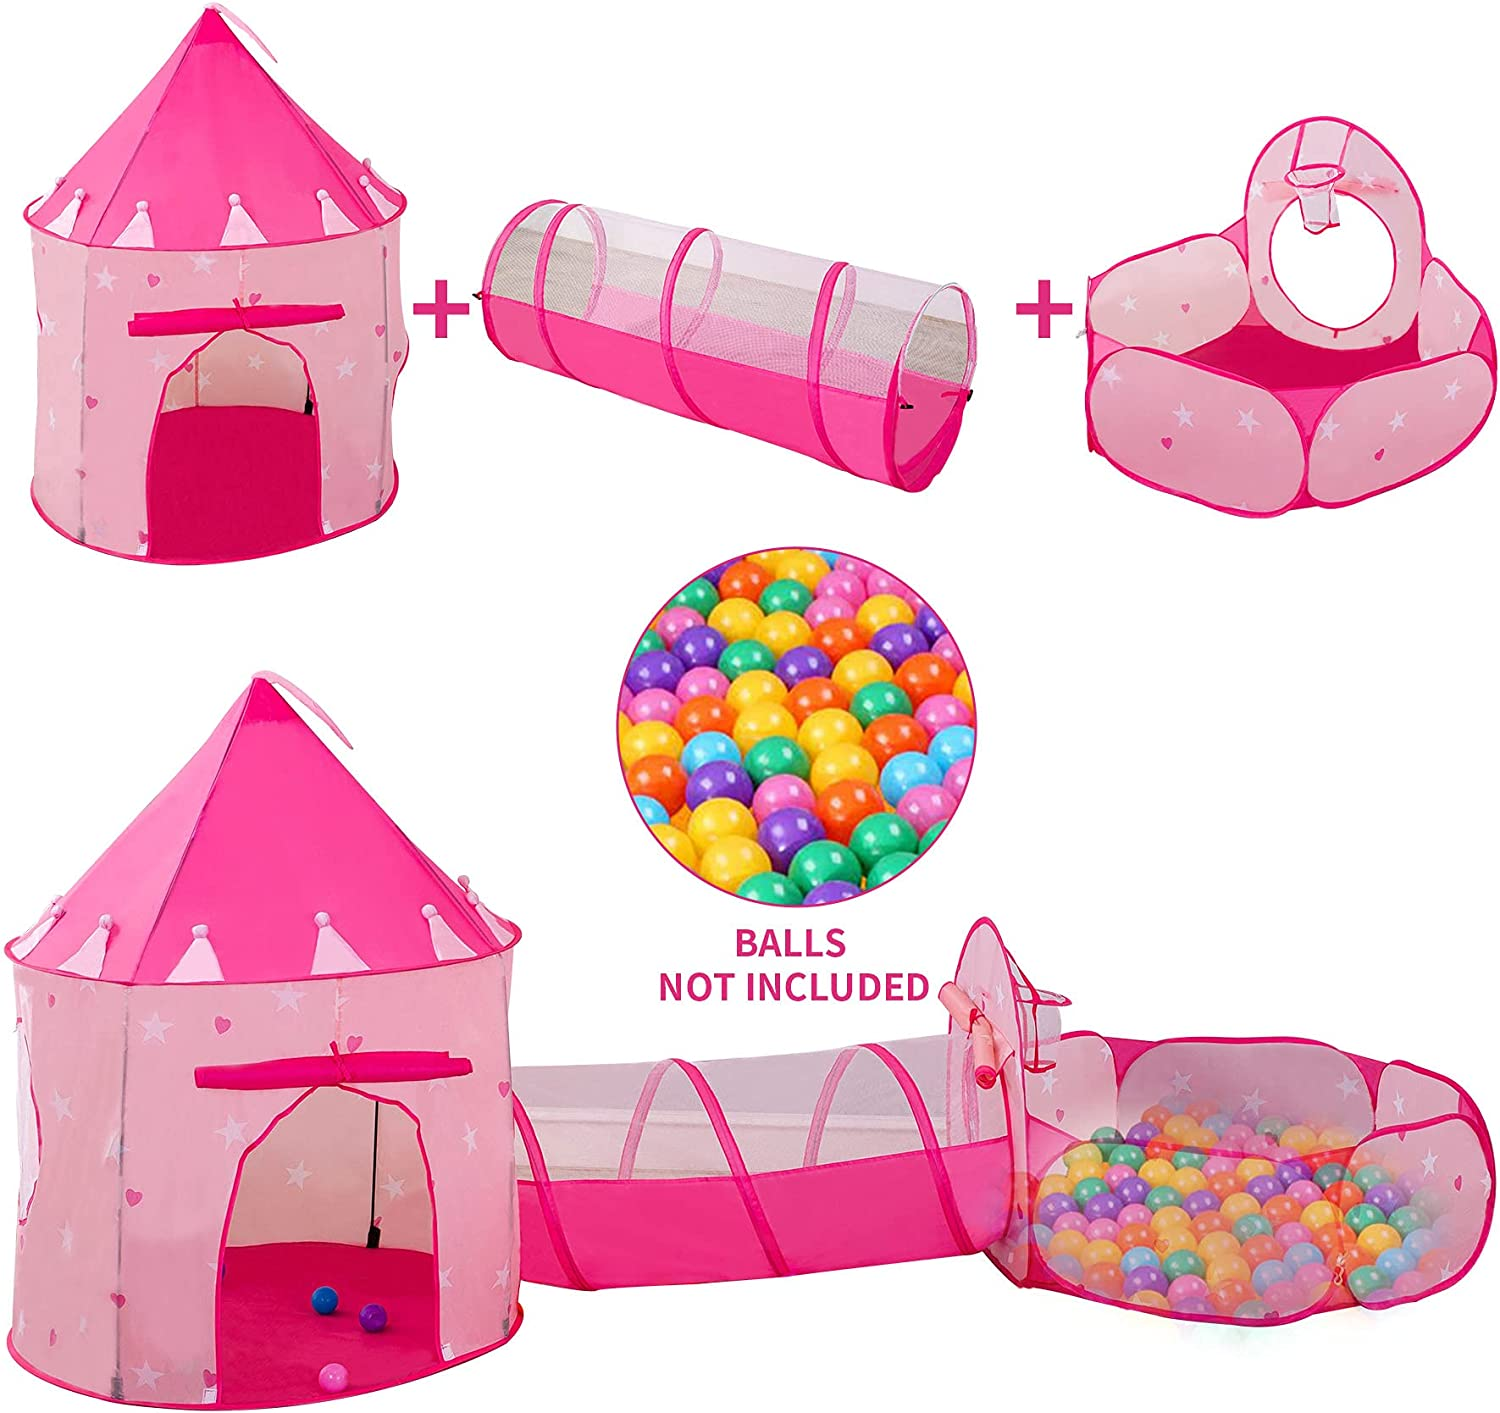 LDTNET 3 in 1 Kids Play unisex Tent Challenge the lowest price Ball for Girls P with Pit